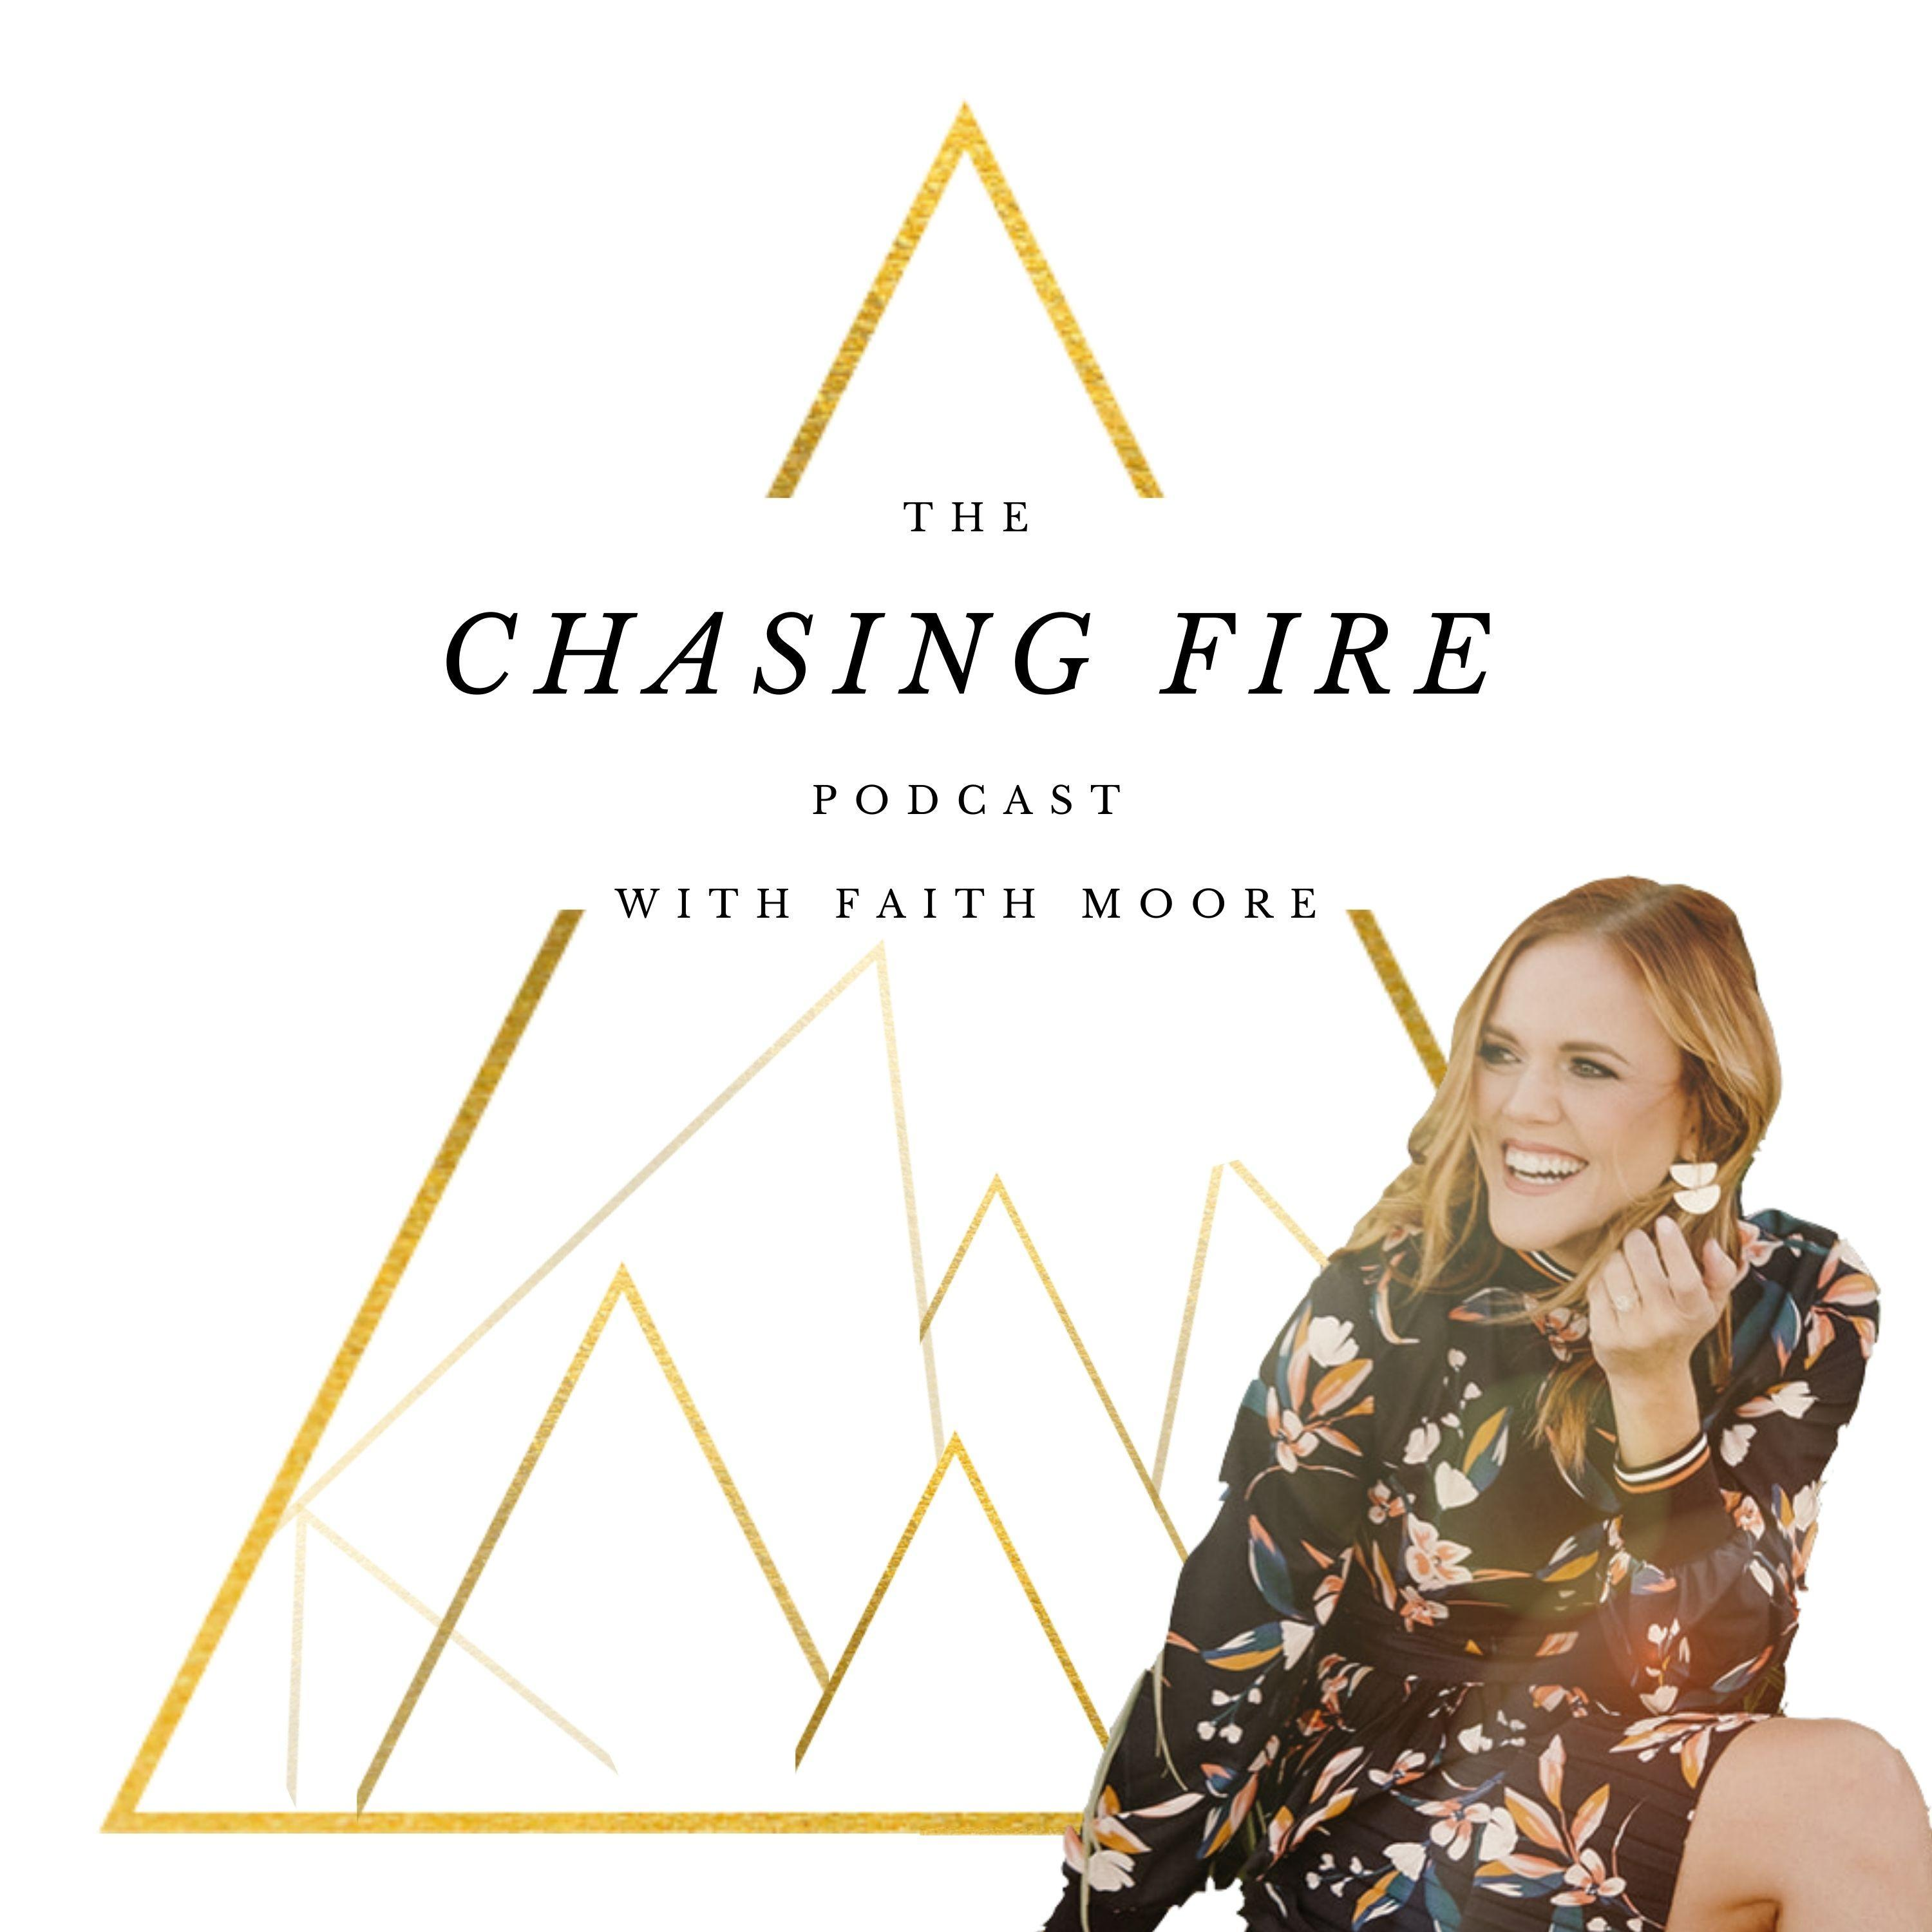 The Chasing Fire Podcast